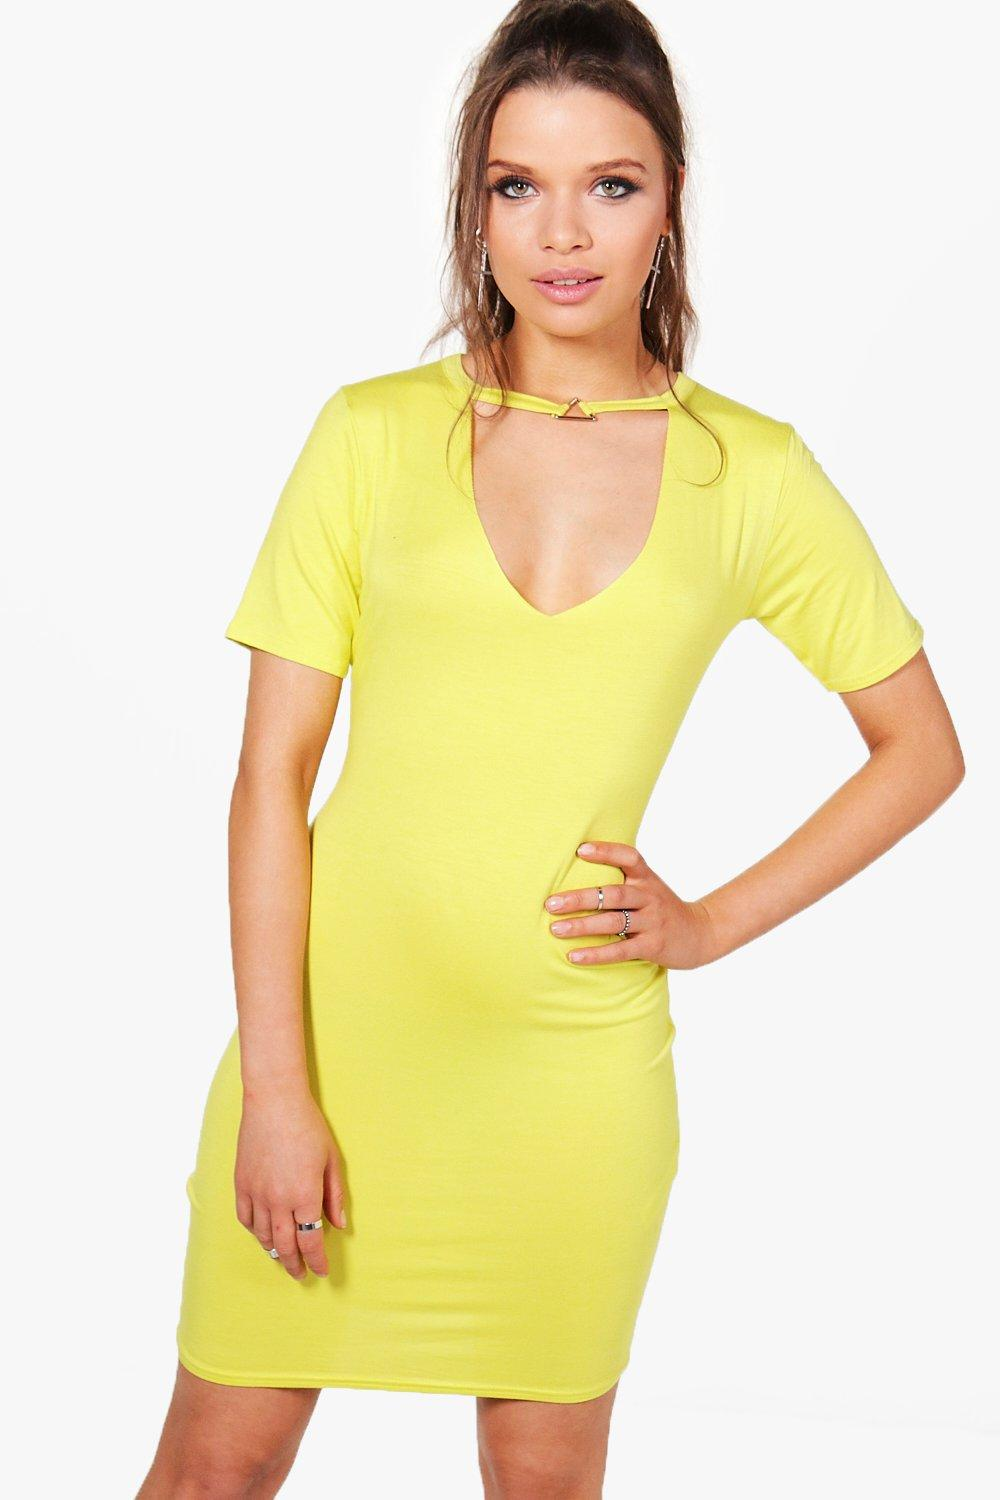 NEW-Boohoo-Womens-Maddie-Choker-Triangle-Ring-Detail-Bodycon-Dress-in-Viscose